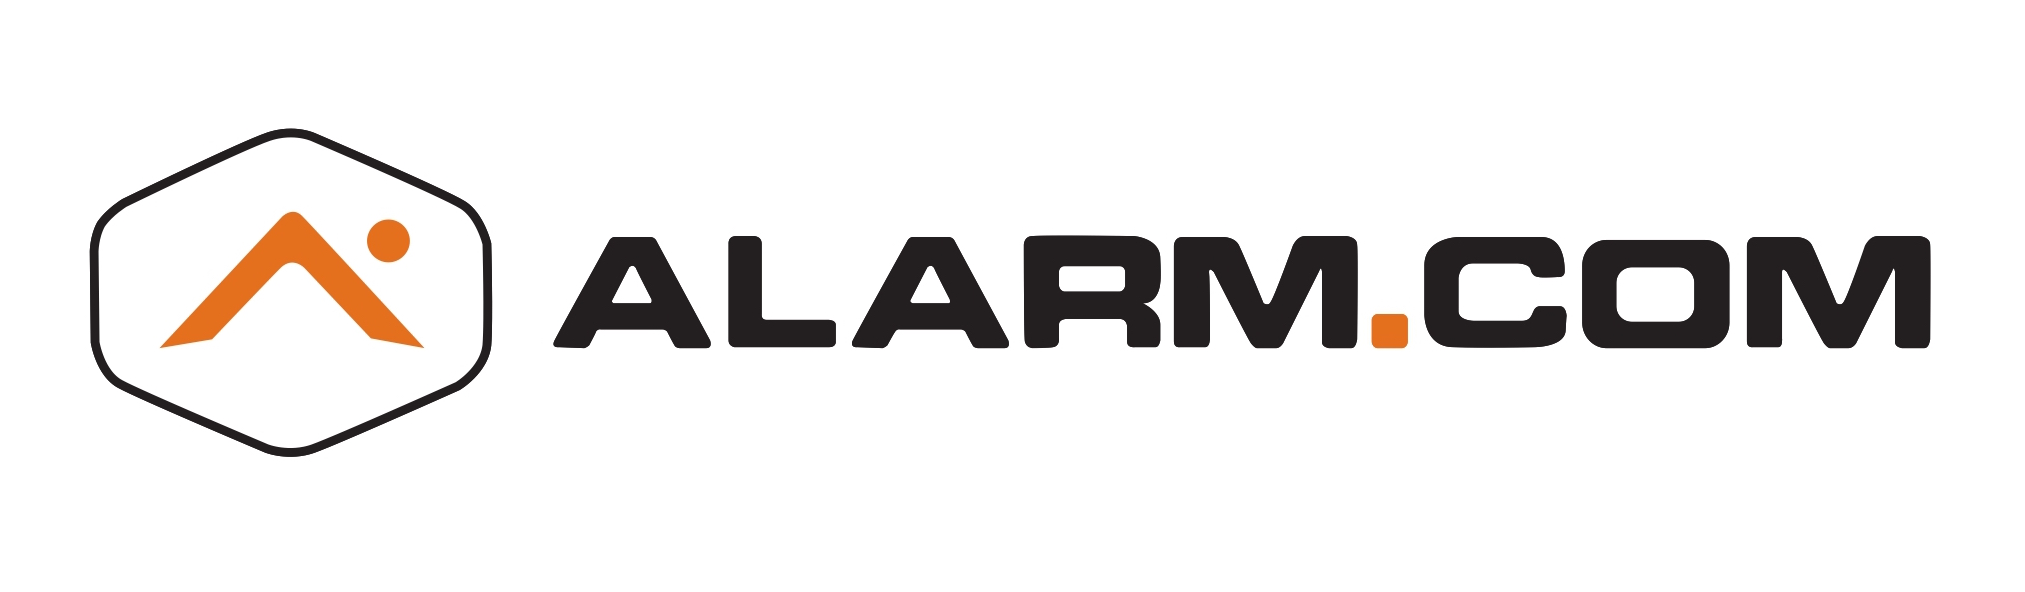 Alarm.com develops technology and software that has been implemented into  many home security and automation systems, such as Interlogix, 2Gig and  Qolsys.